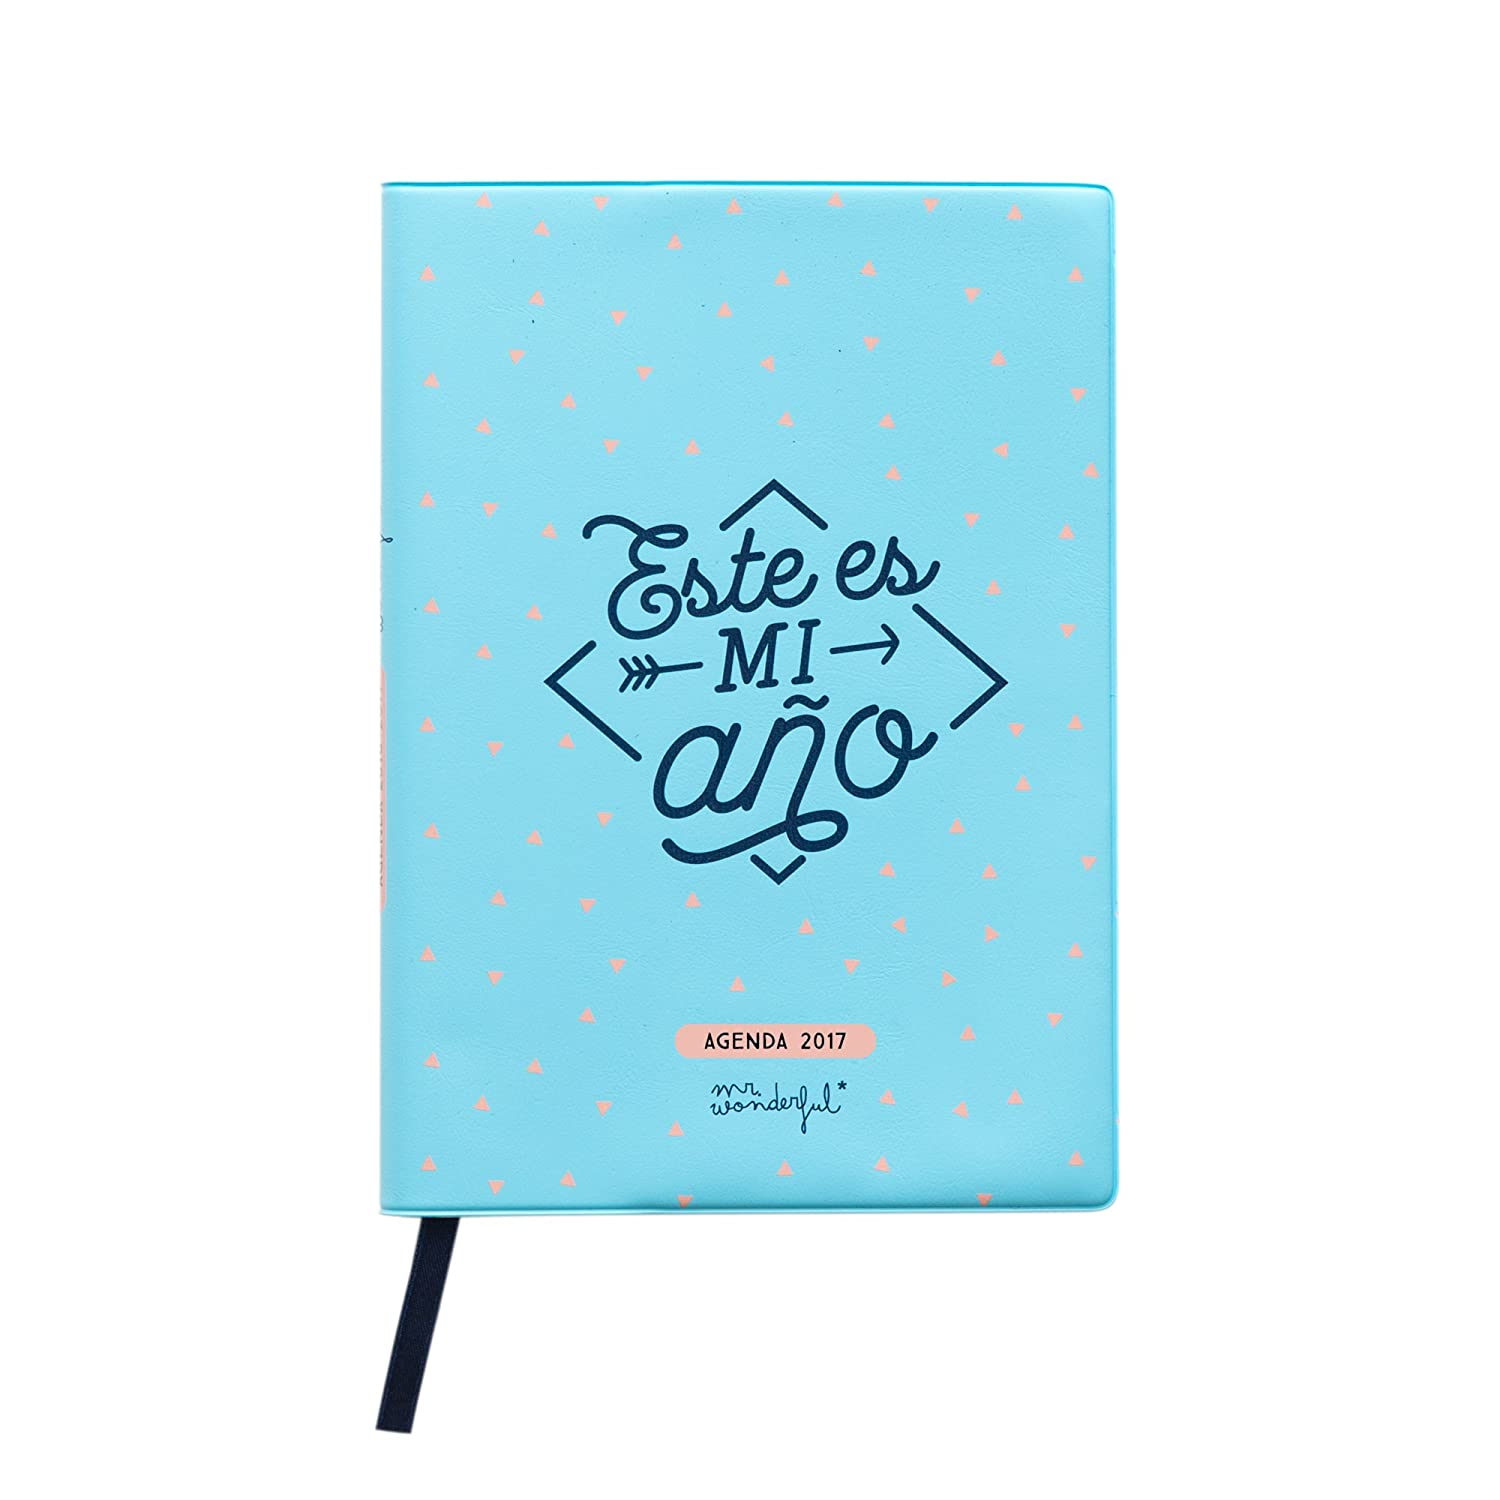 Mr. Wonderful - Agenda 2017 (12.5 x 17.5 cm), color azul: Amazon ...